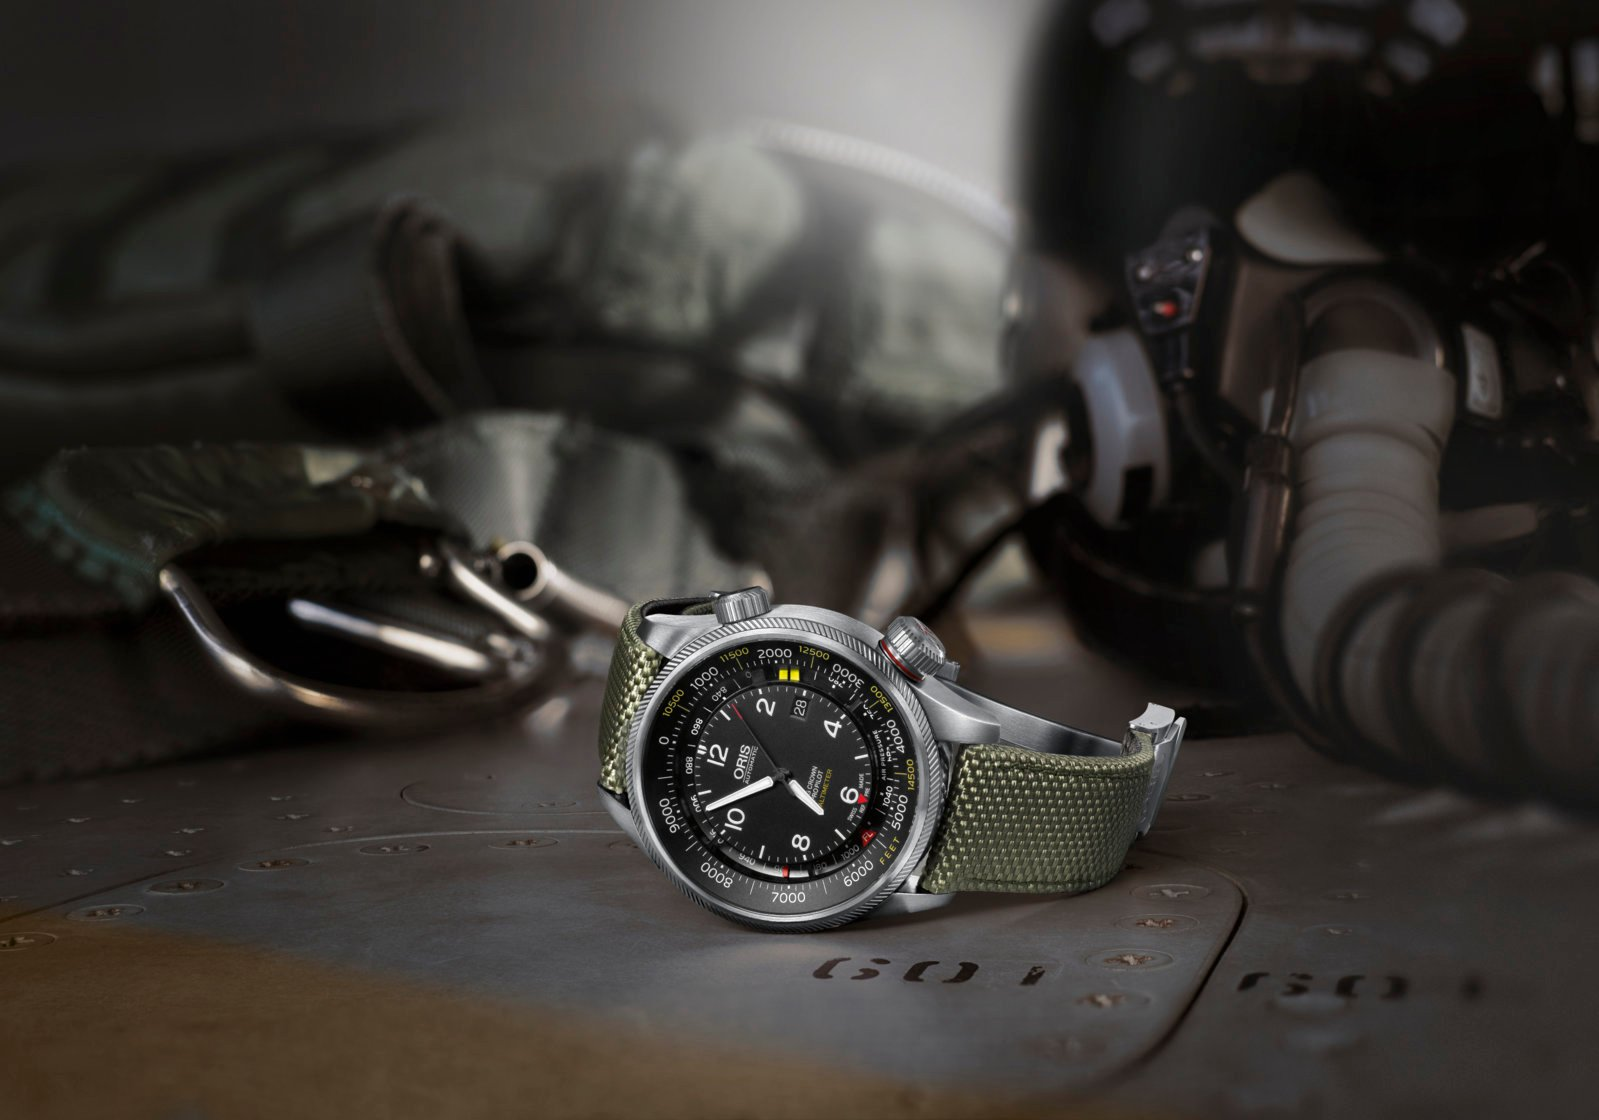 01 733 7705 4134-07 5 23 14FC - Oris Big Crown ProPilot Altimeter with Feet Scale_HighRes_1514.jpg